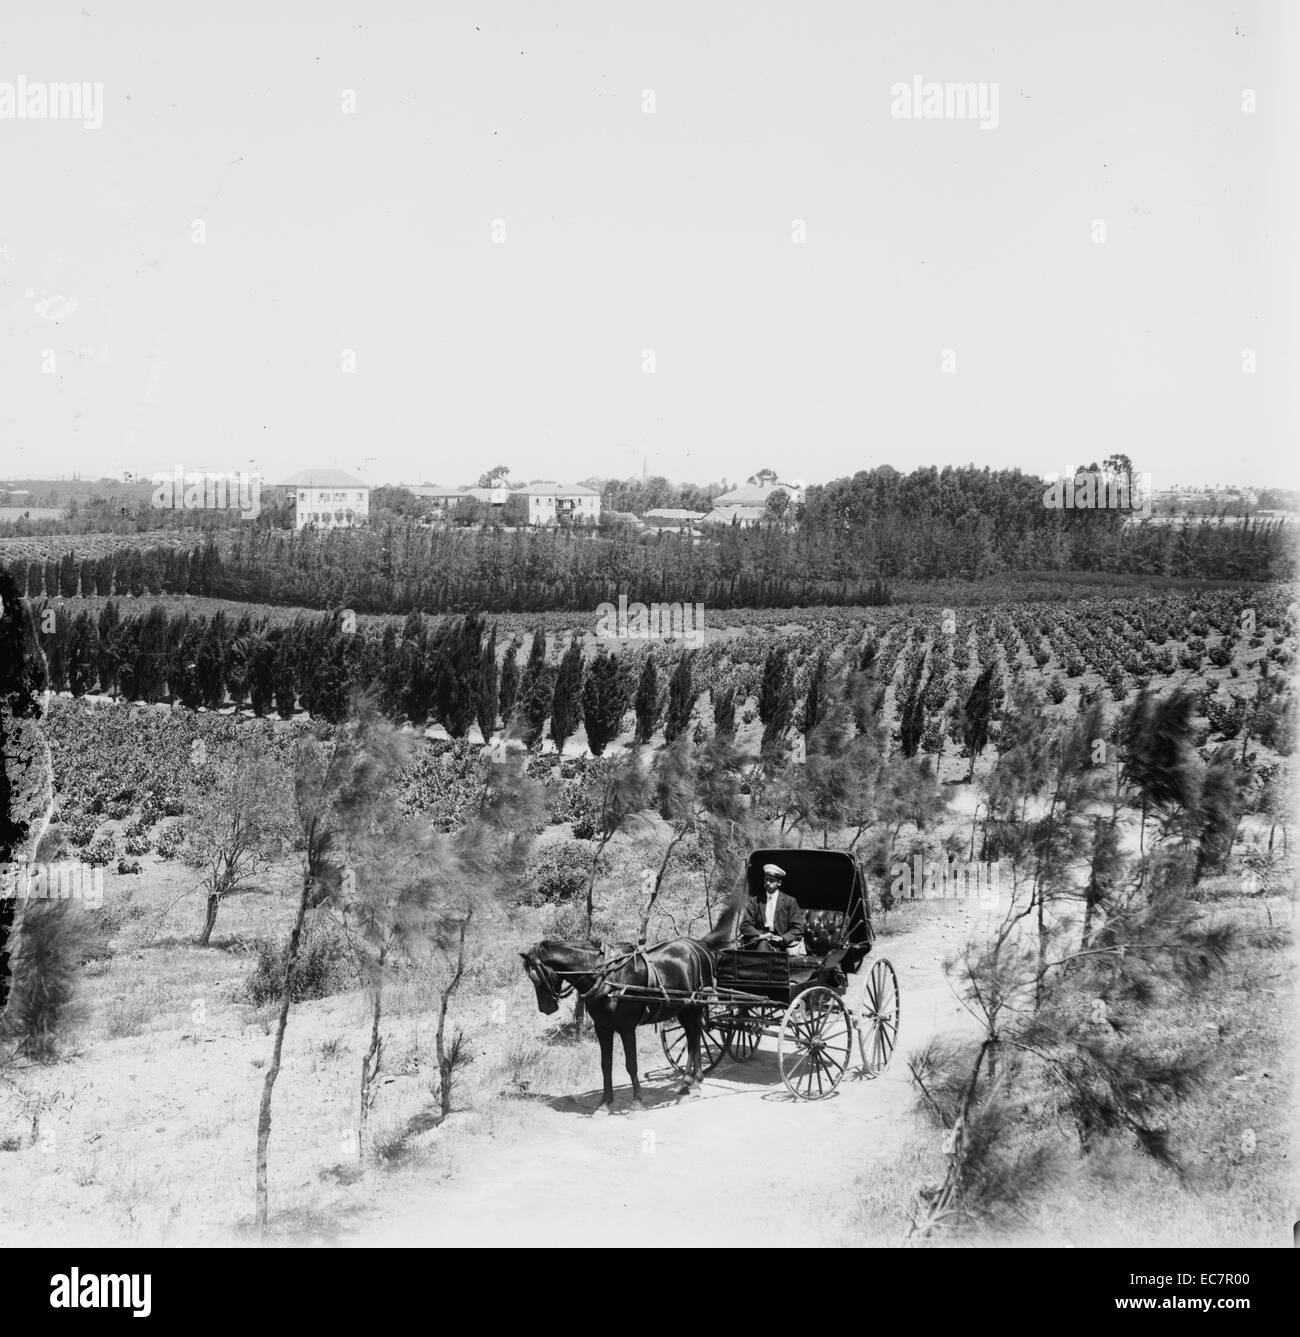 Jewish colony in Palestine. Photograph shows Mikveh (Mikveh) Israel Agricultural School with buildings in the background - Stock Image